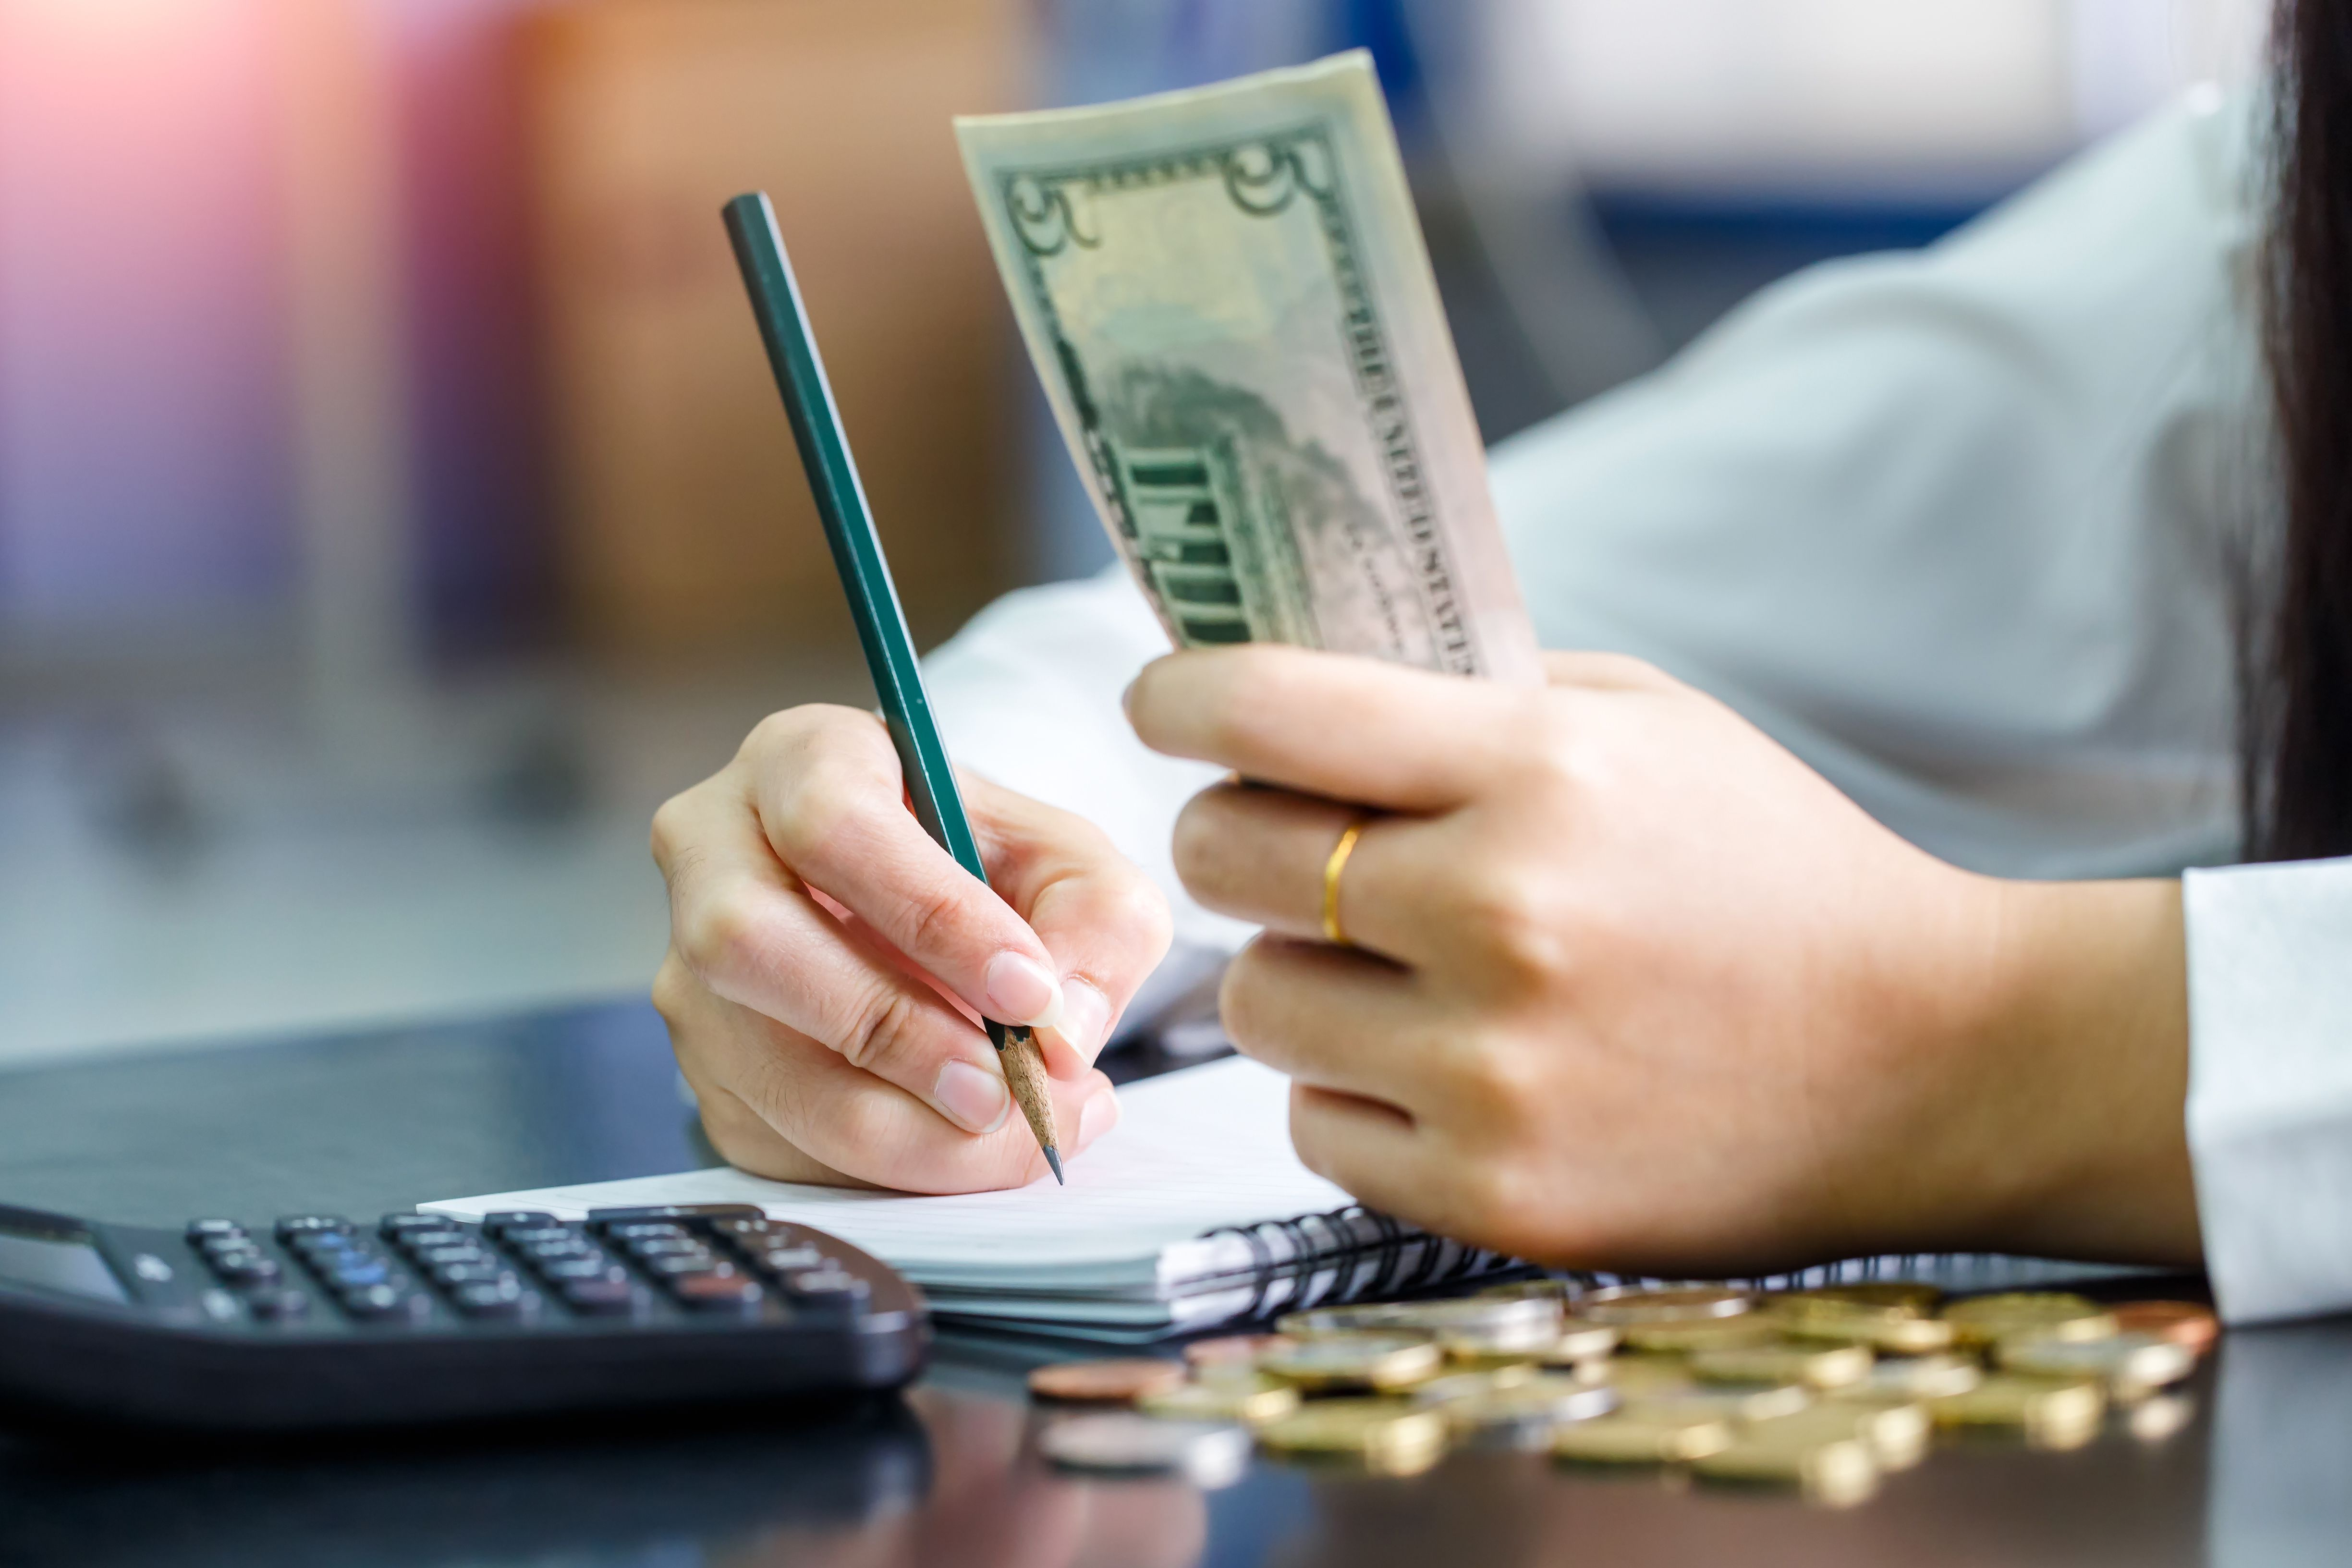 Homeowner clutching five dollar bills in one hand as she calculates her expenses with a pencil, pad, and calculator